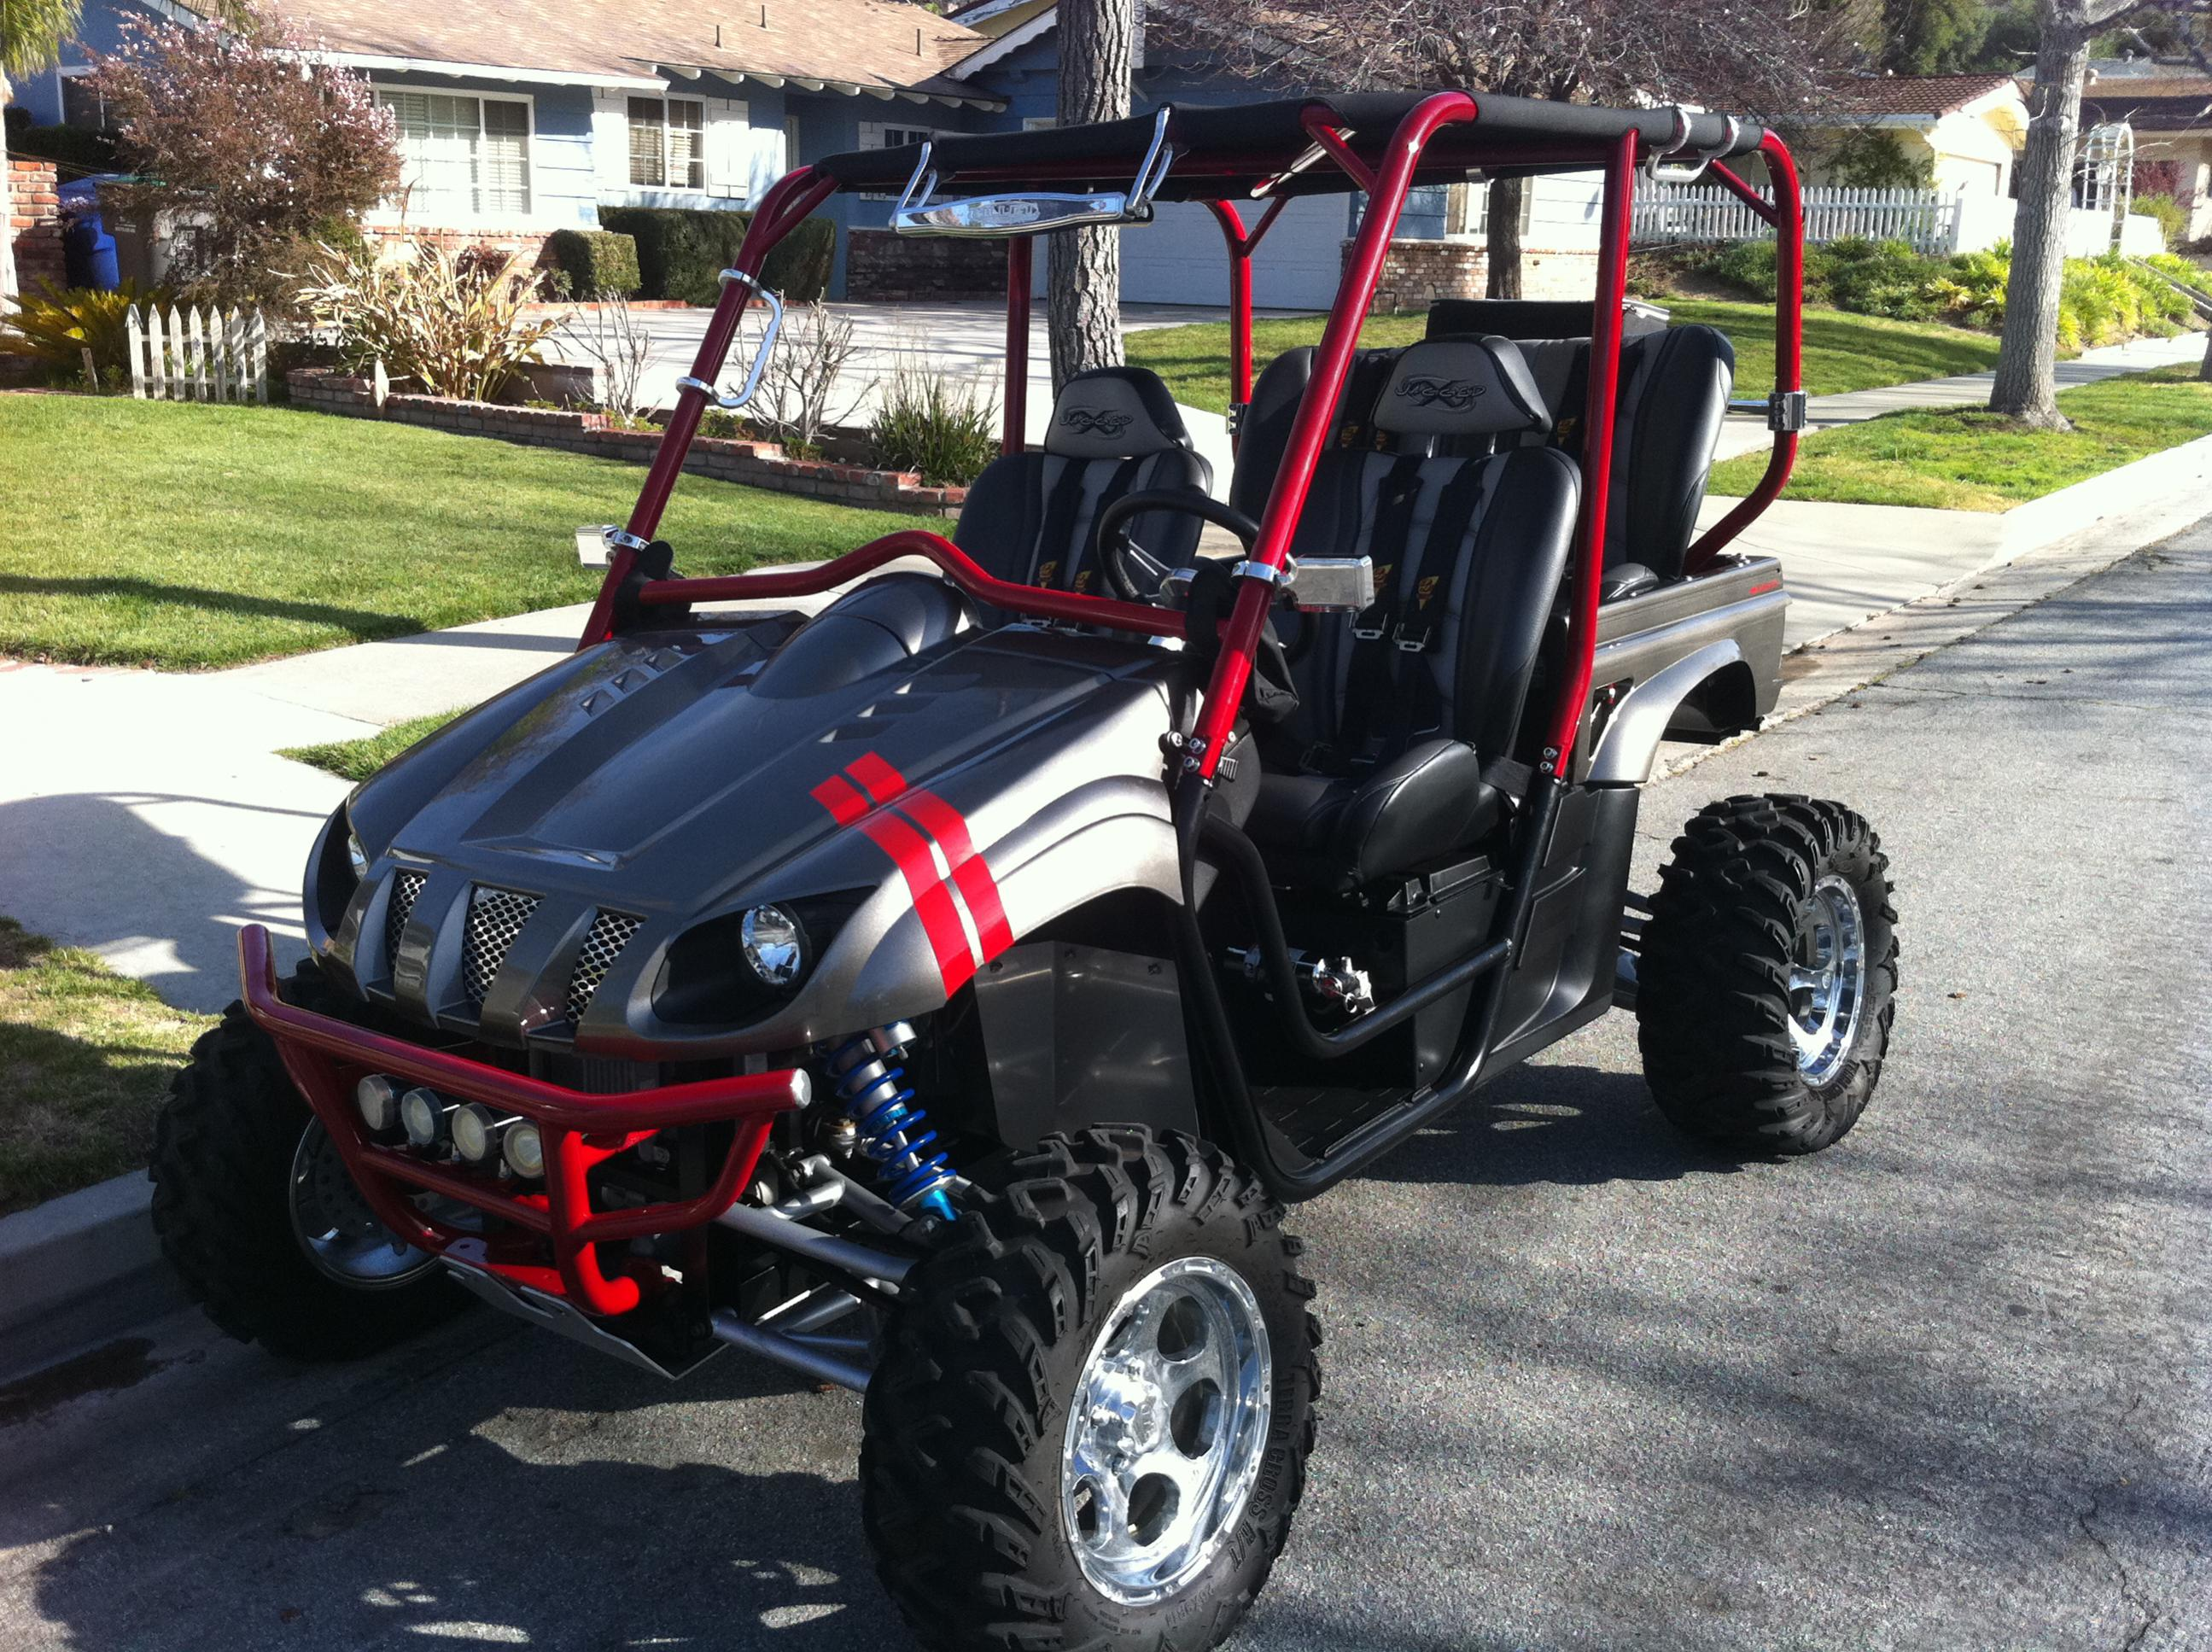 2006 Rhino Jaggedx Custom 4 Seater Long Travel Yamaha